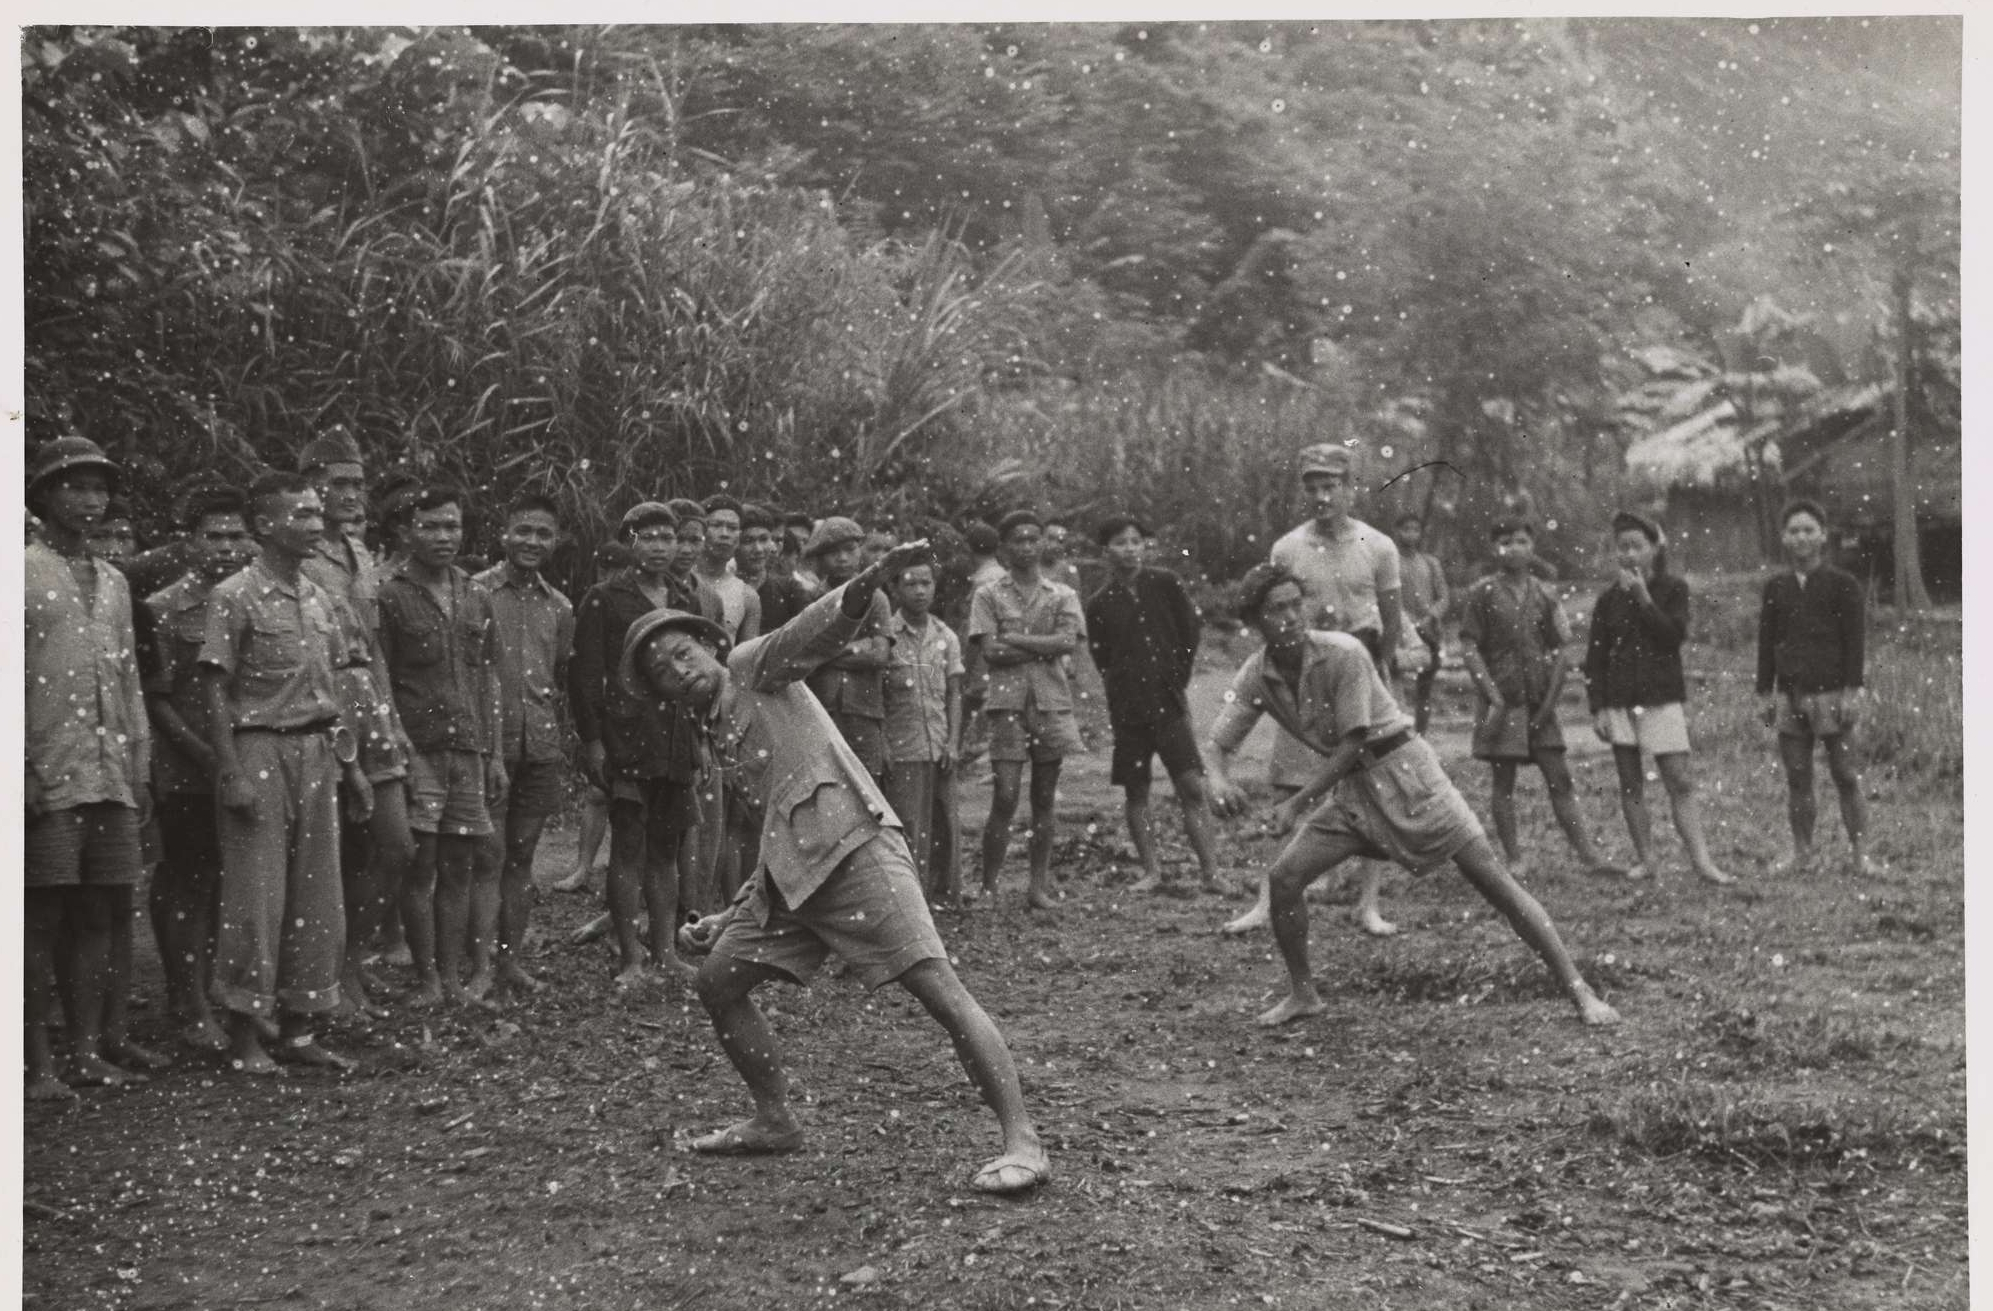 OSS Officers Watch as Viet Minh Practice Throwing Grenades